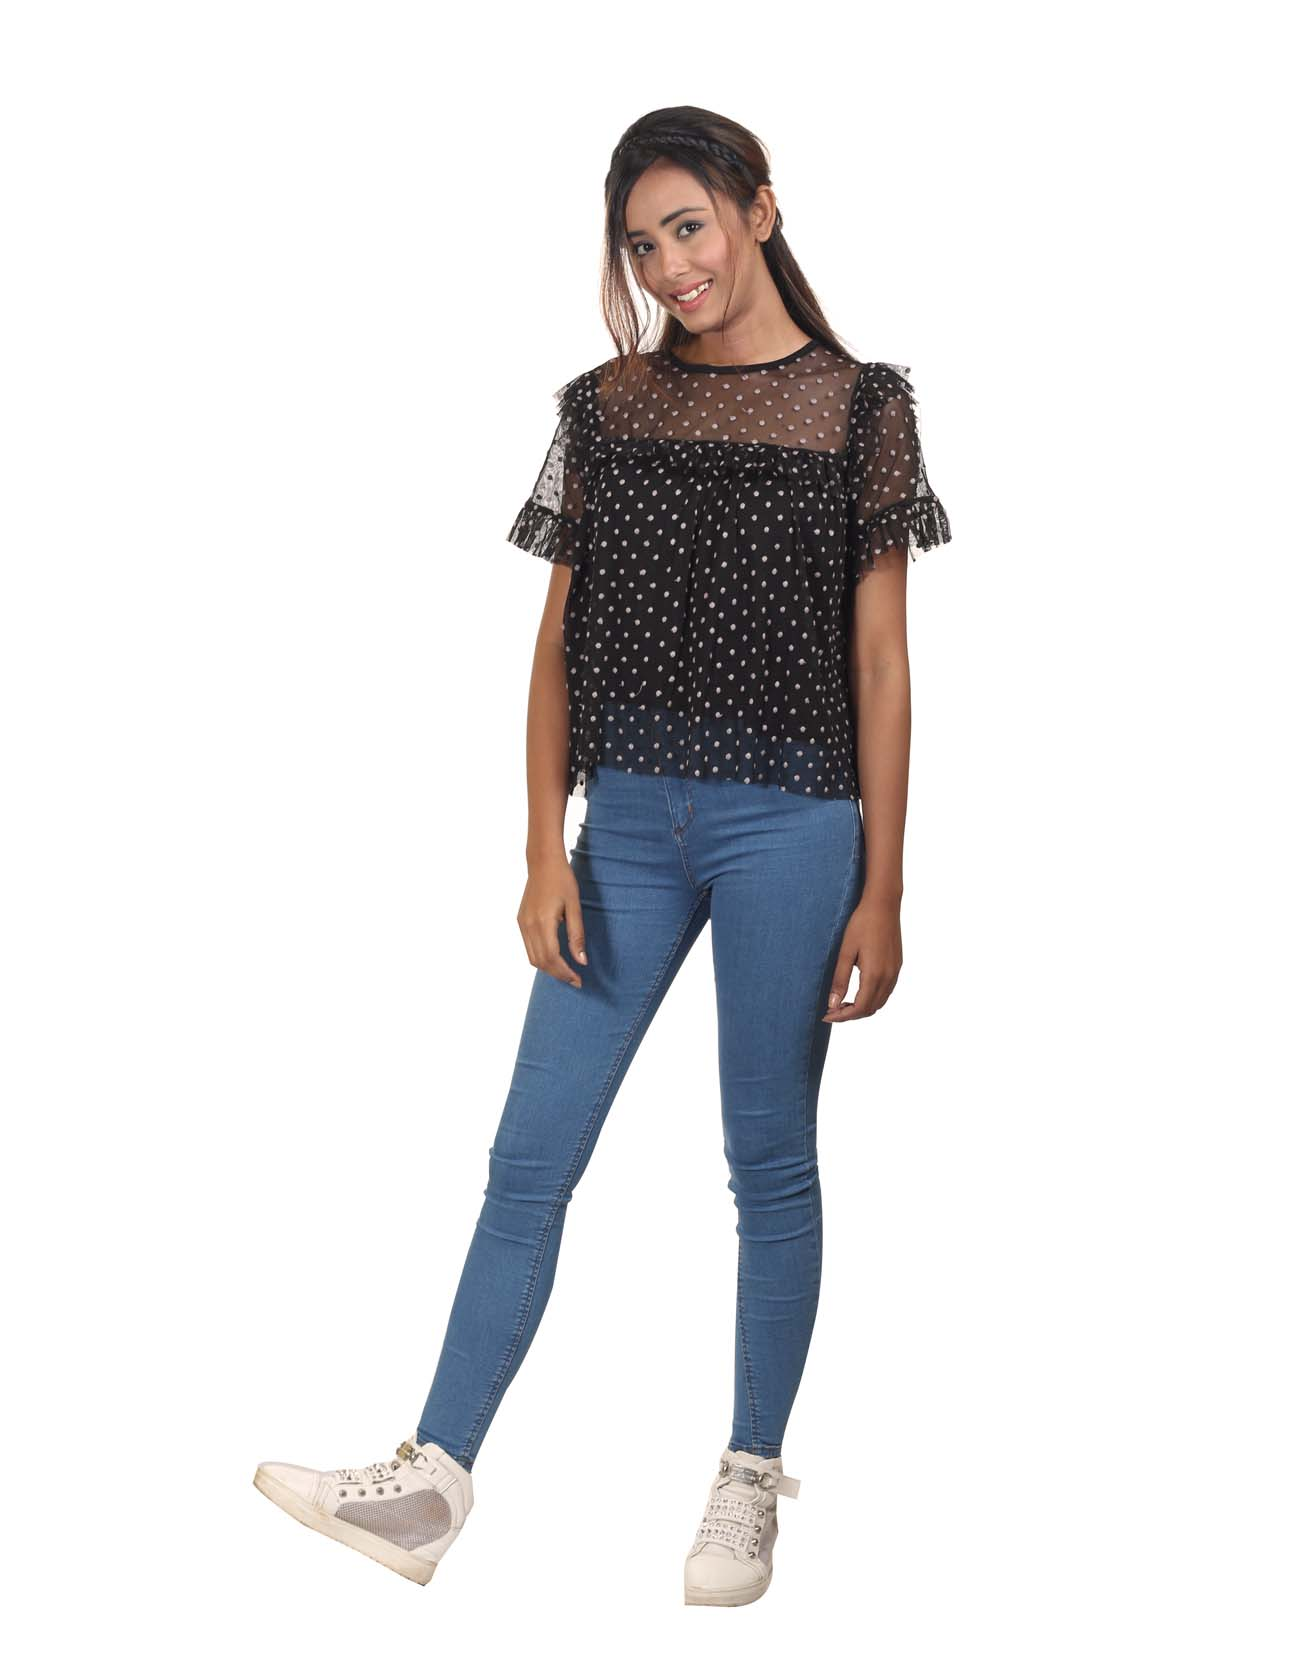 Lace Polka Top